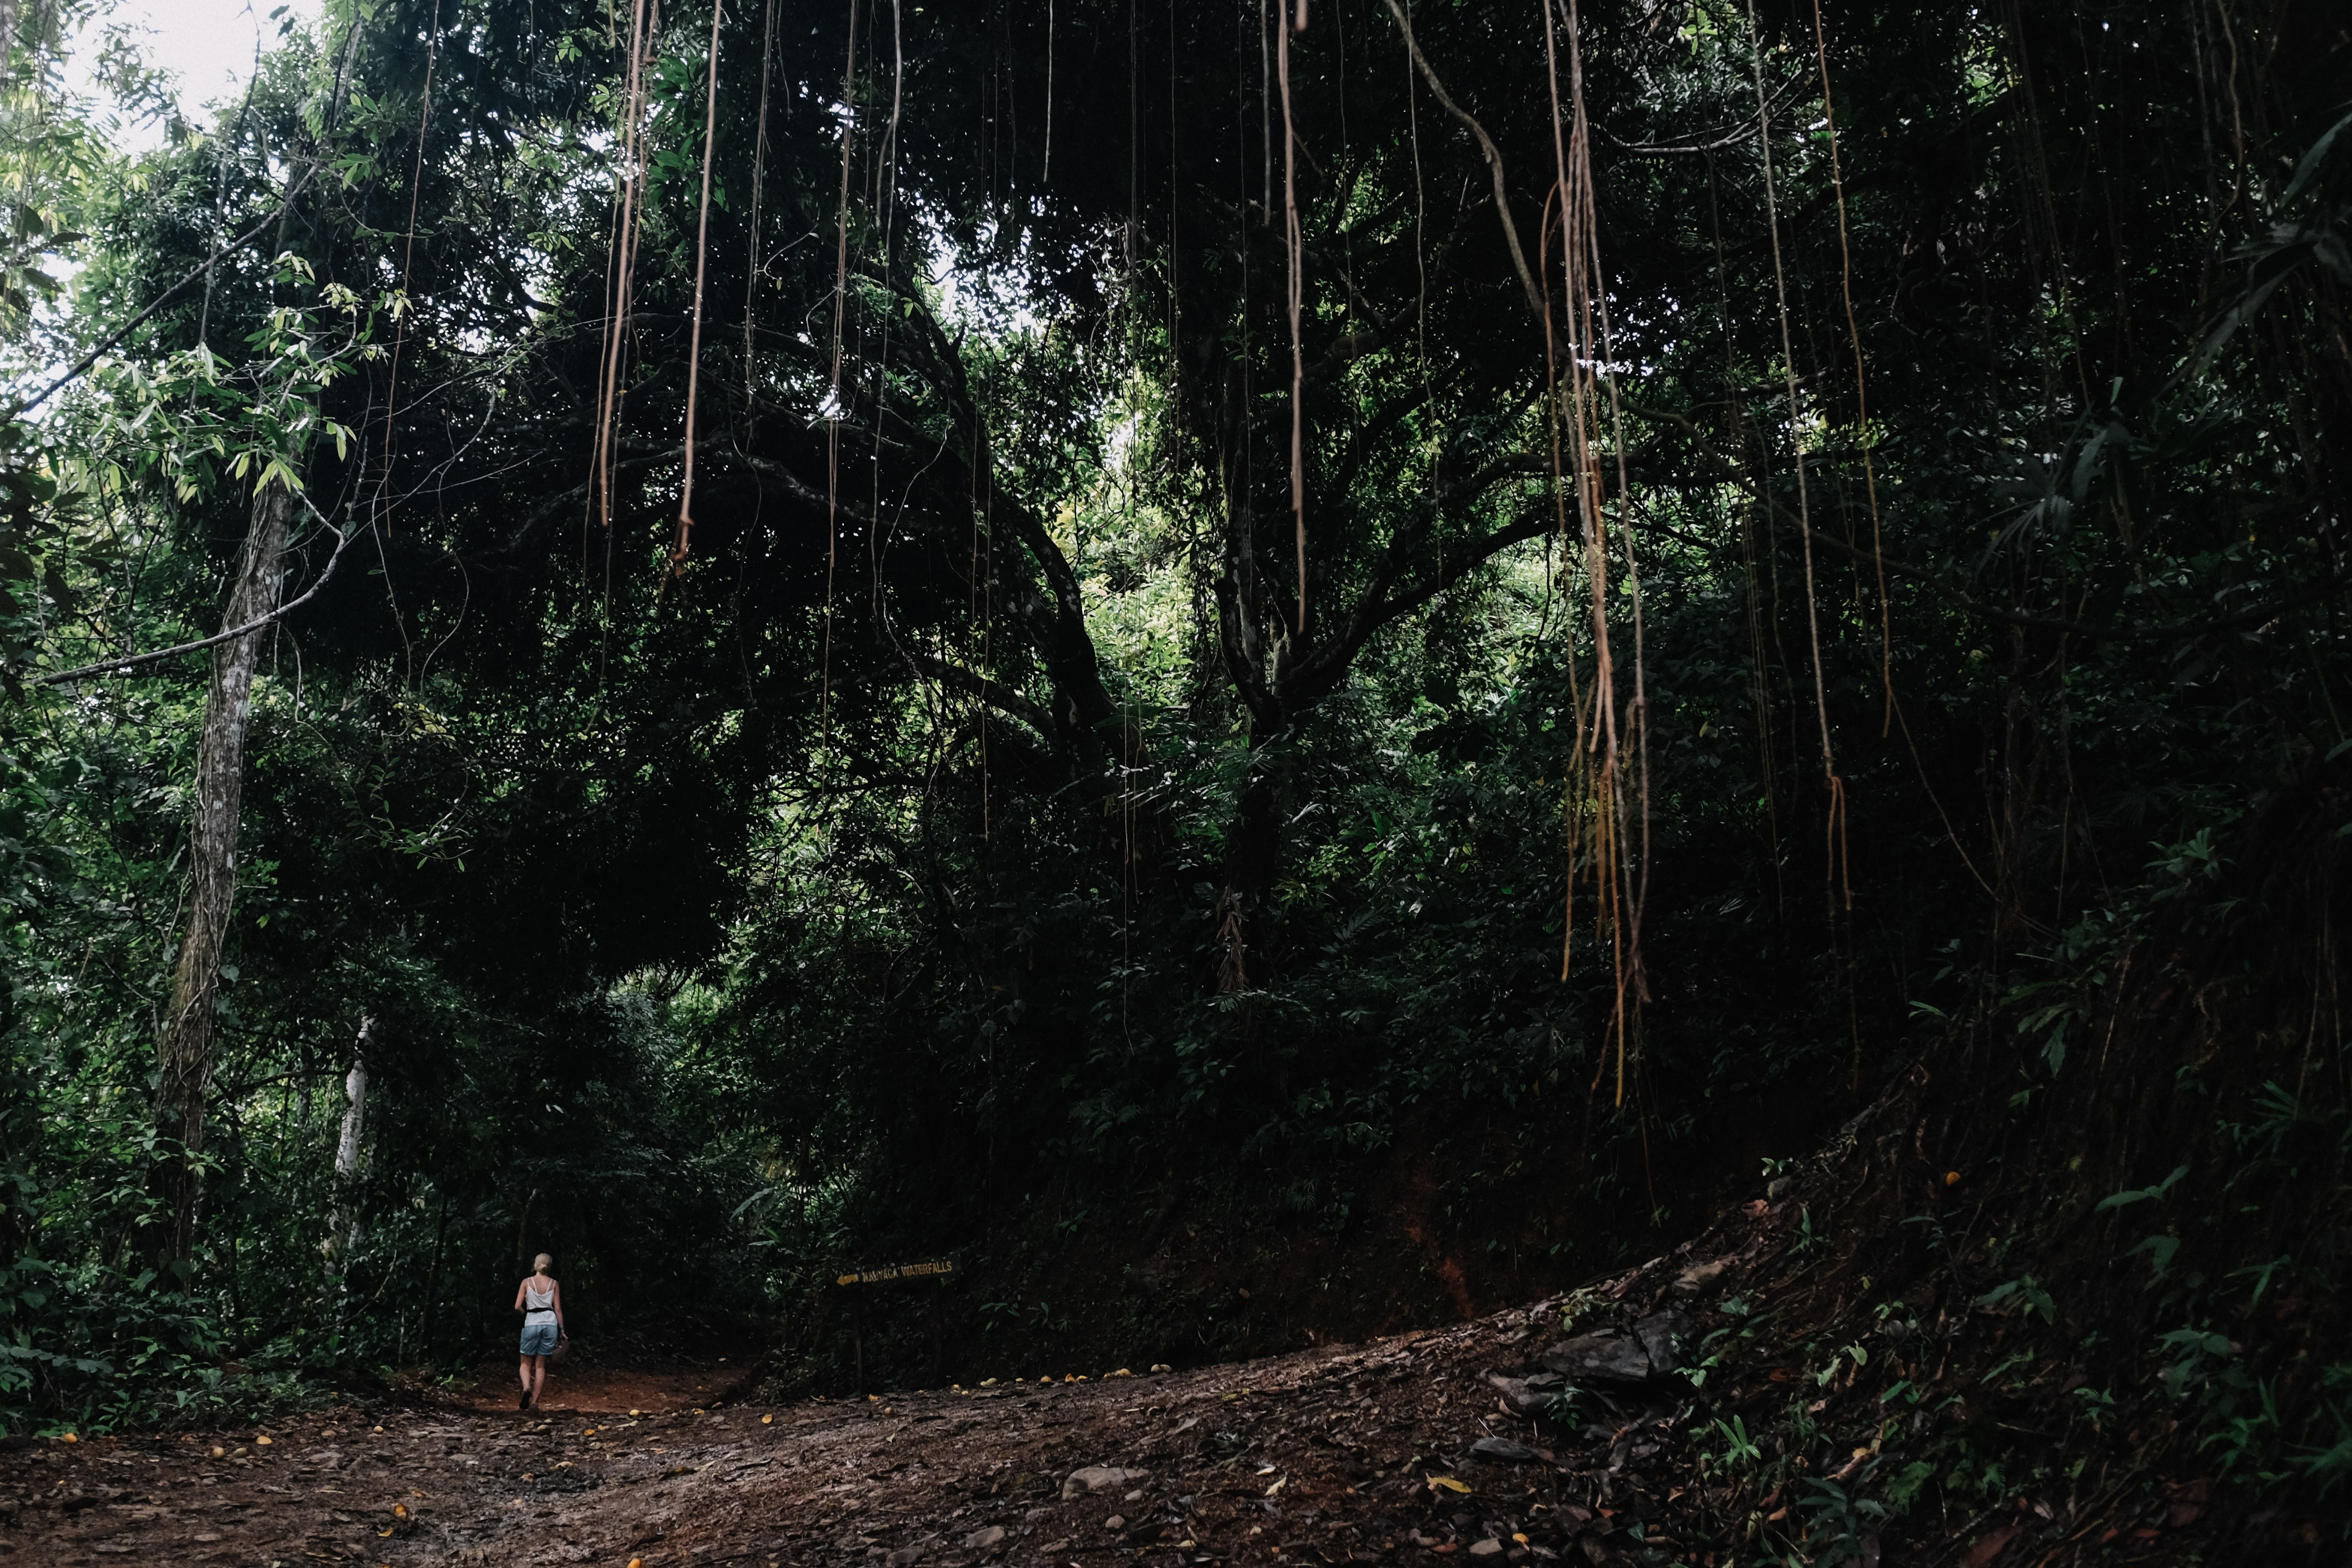 A woman walking through a tropical forest in Costa Rica